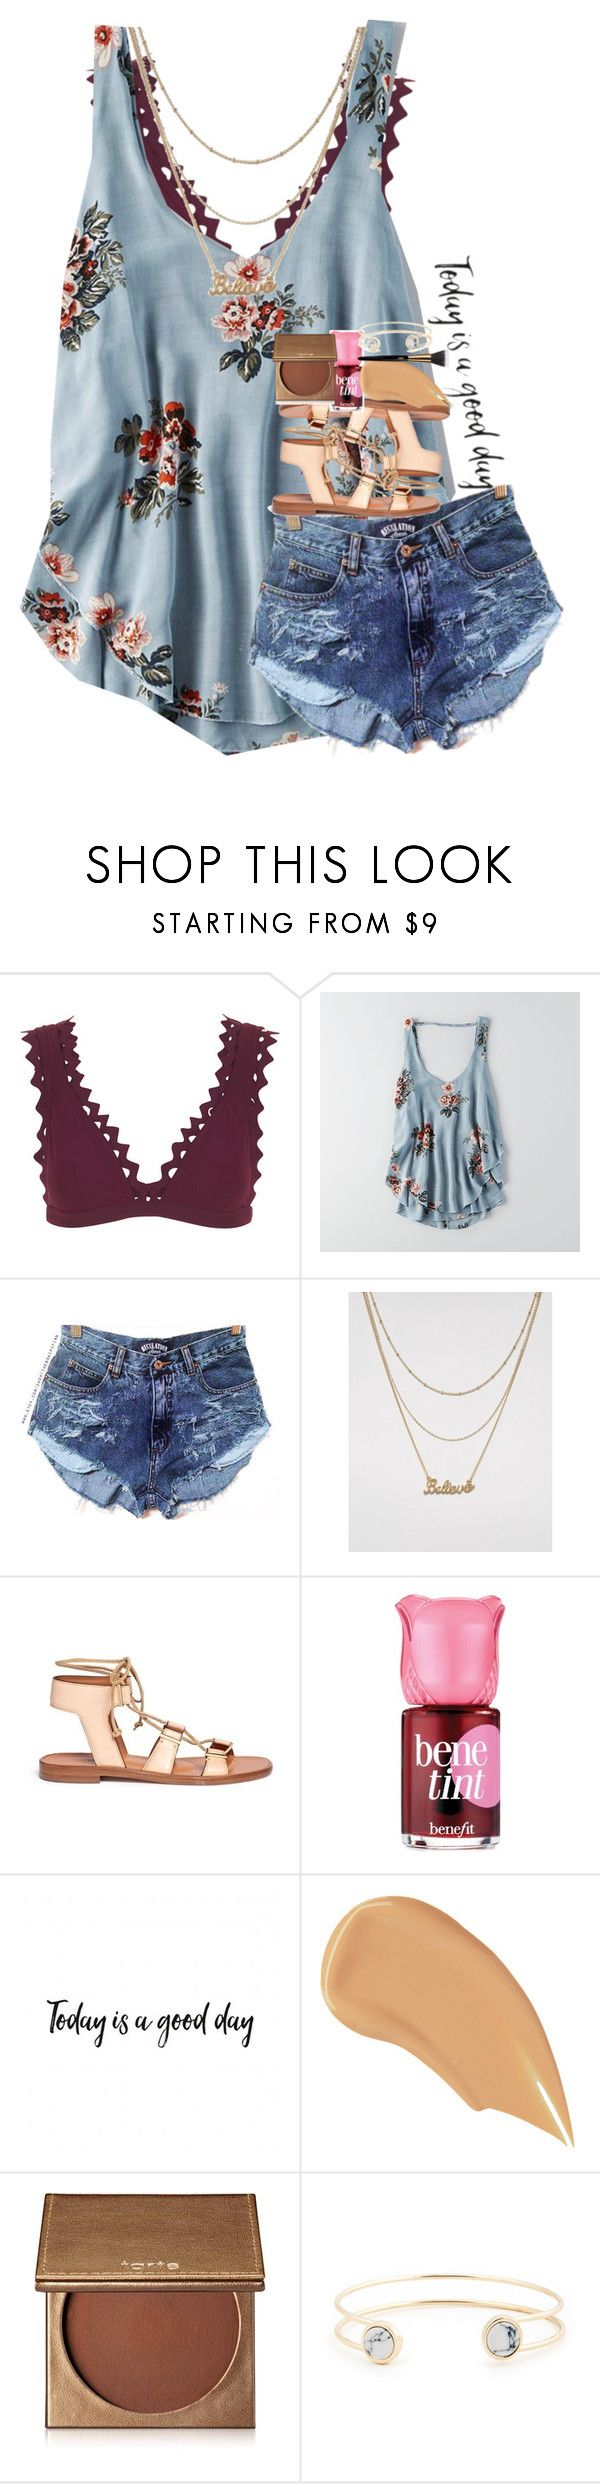 """""""you're loved, even when you feel alone. hang on. it gets easier, then it gets okay, then it feels like freedom."""" by ellaswiftie13 ❤ liked on Polyvore featuring Karla Colletto, American Eagle Outfitters, Monki, Rosetta Getty, Benefit, NARS Cosmetics, tarte, Sole Society and Yves Saint Laurent"""